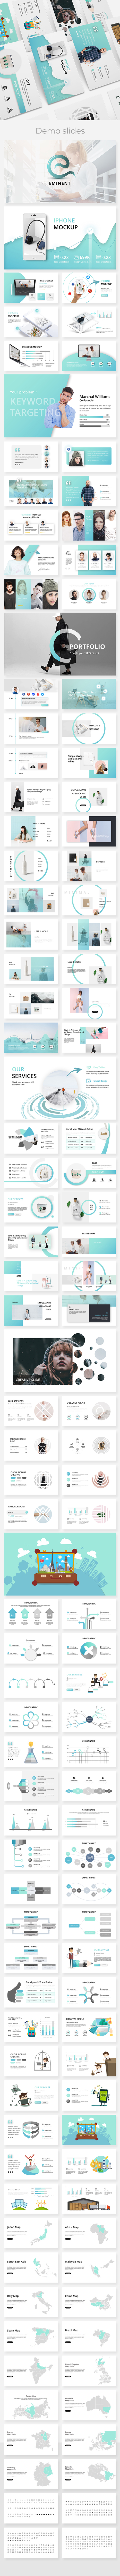 Eminent Creative Google Slide Template - Google Slides Presentation Templates